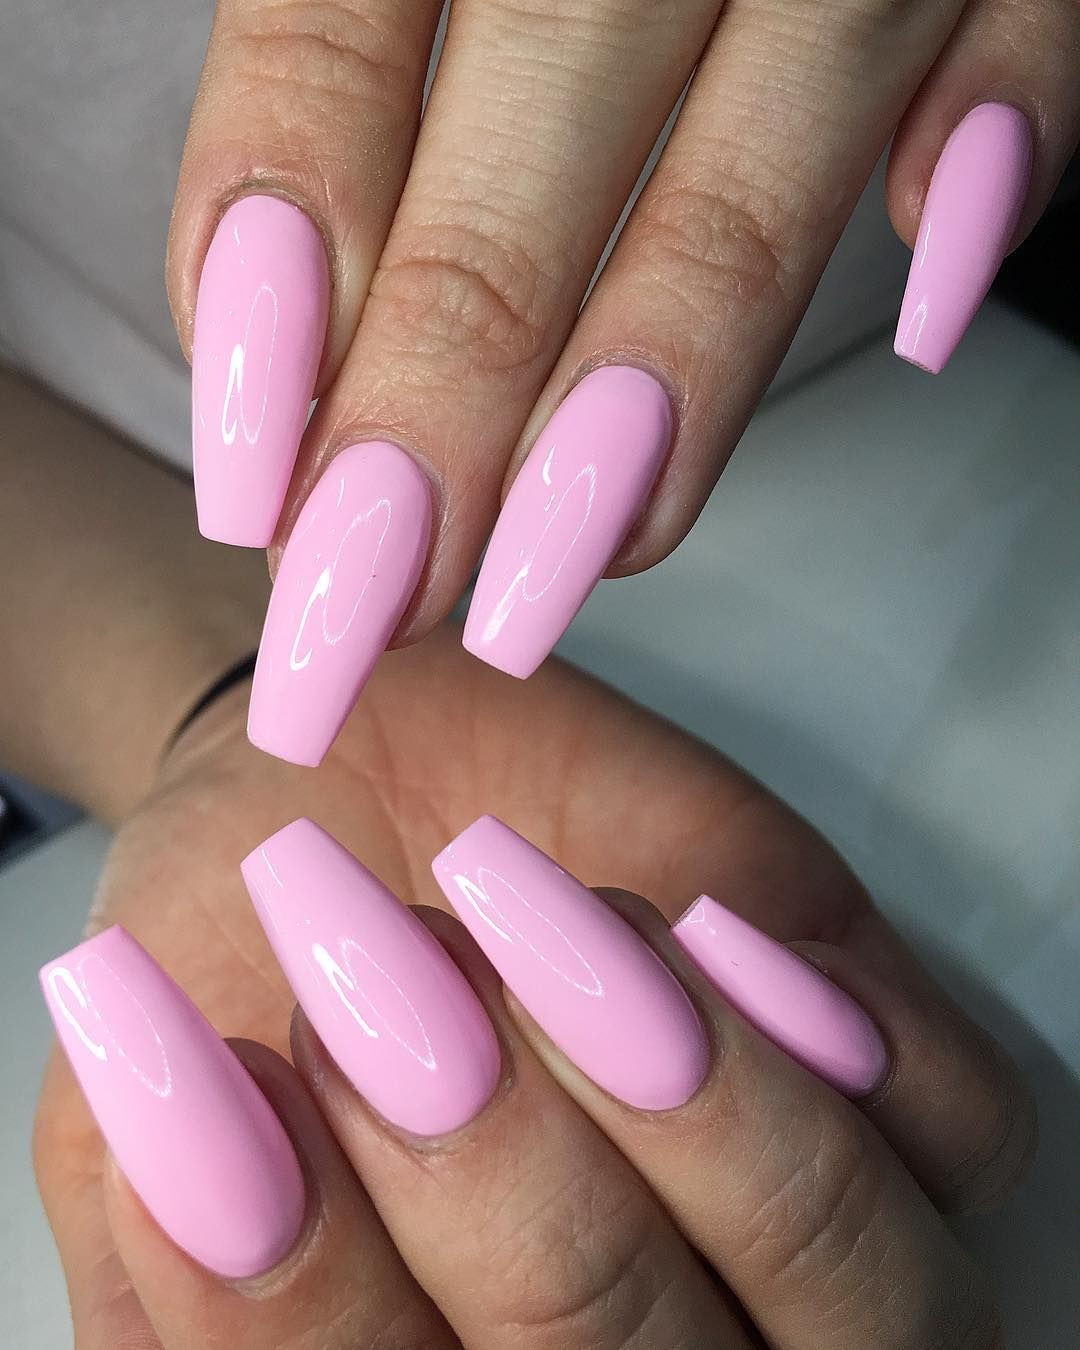 Full Set Acrylic With Regular Polish 38 Our Menu Of Services Is Designed To Cater To Everyone S Needs Light Pink Acrylic Nails Pink Acrylic Nails Pink Nails